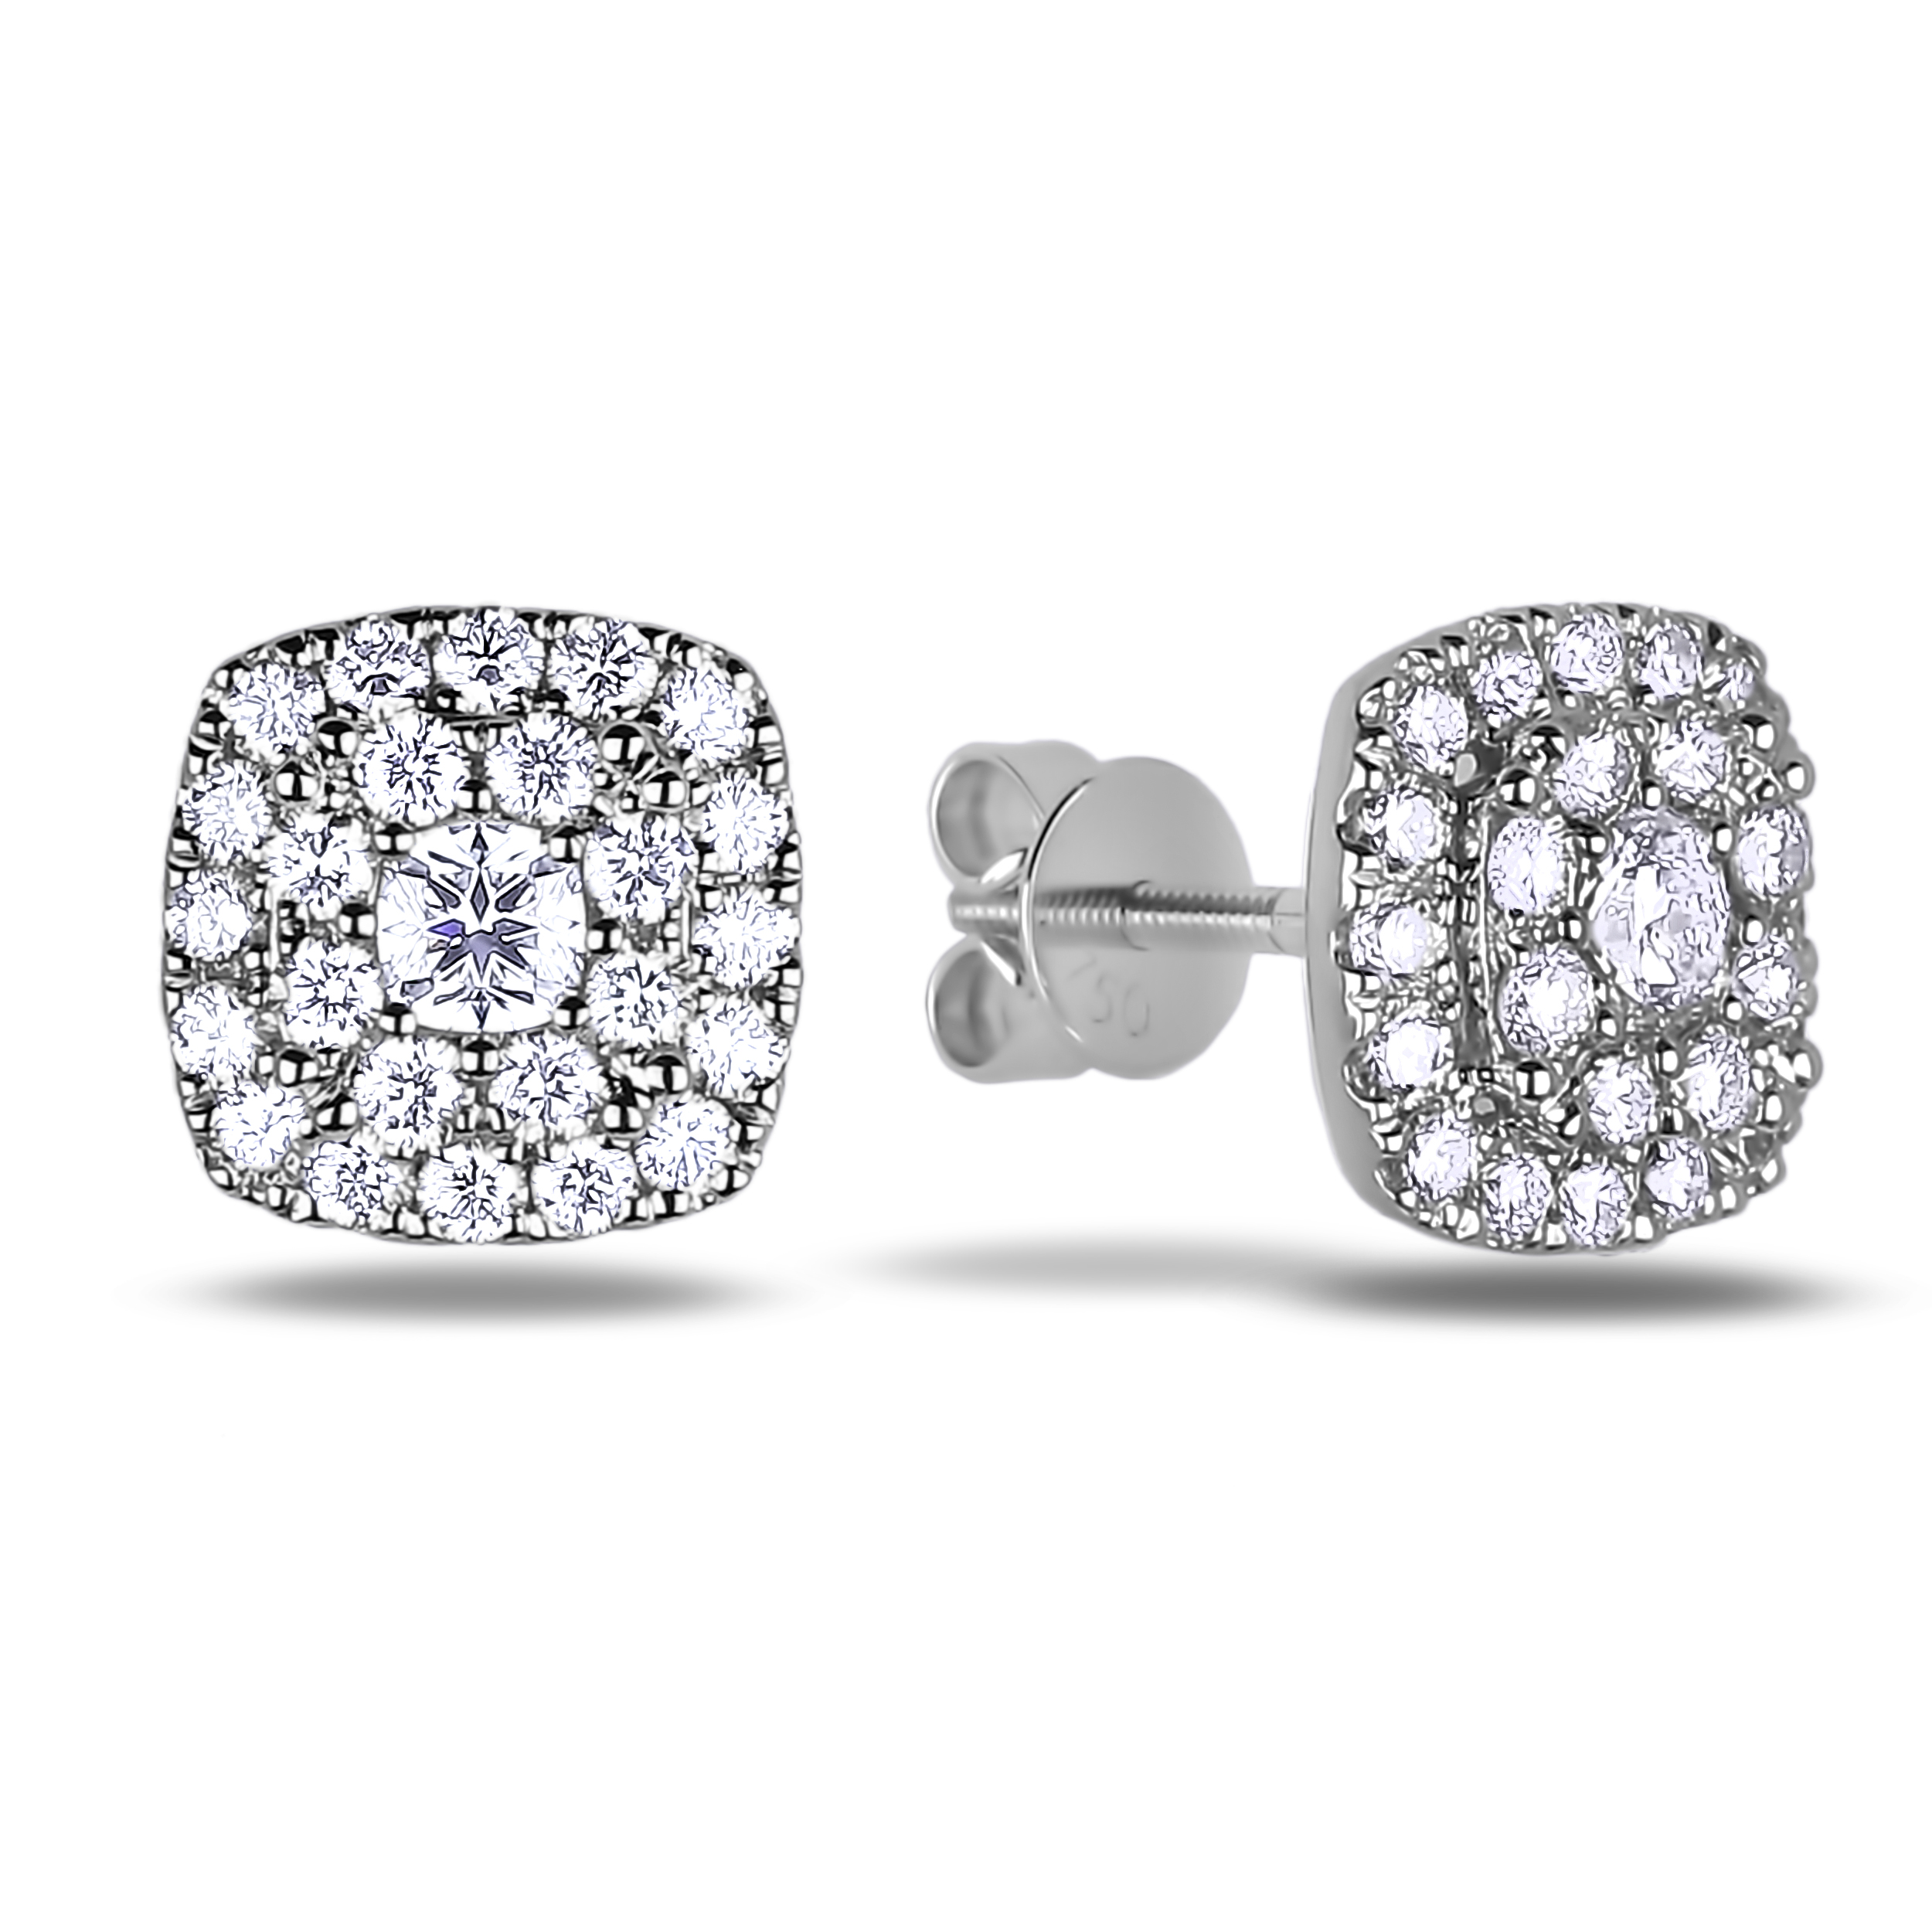 Diamond Stud Earrings SGE306 (Earrings)